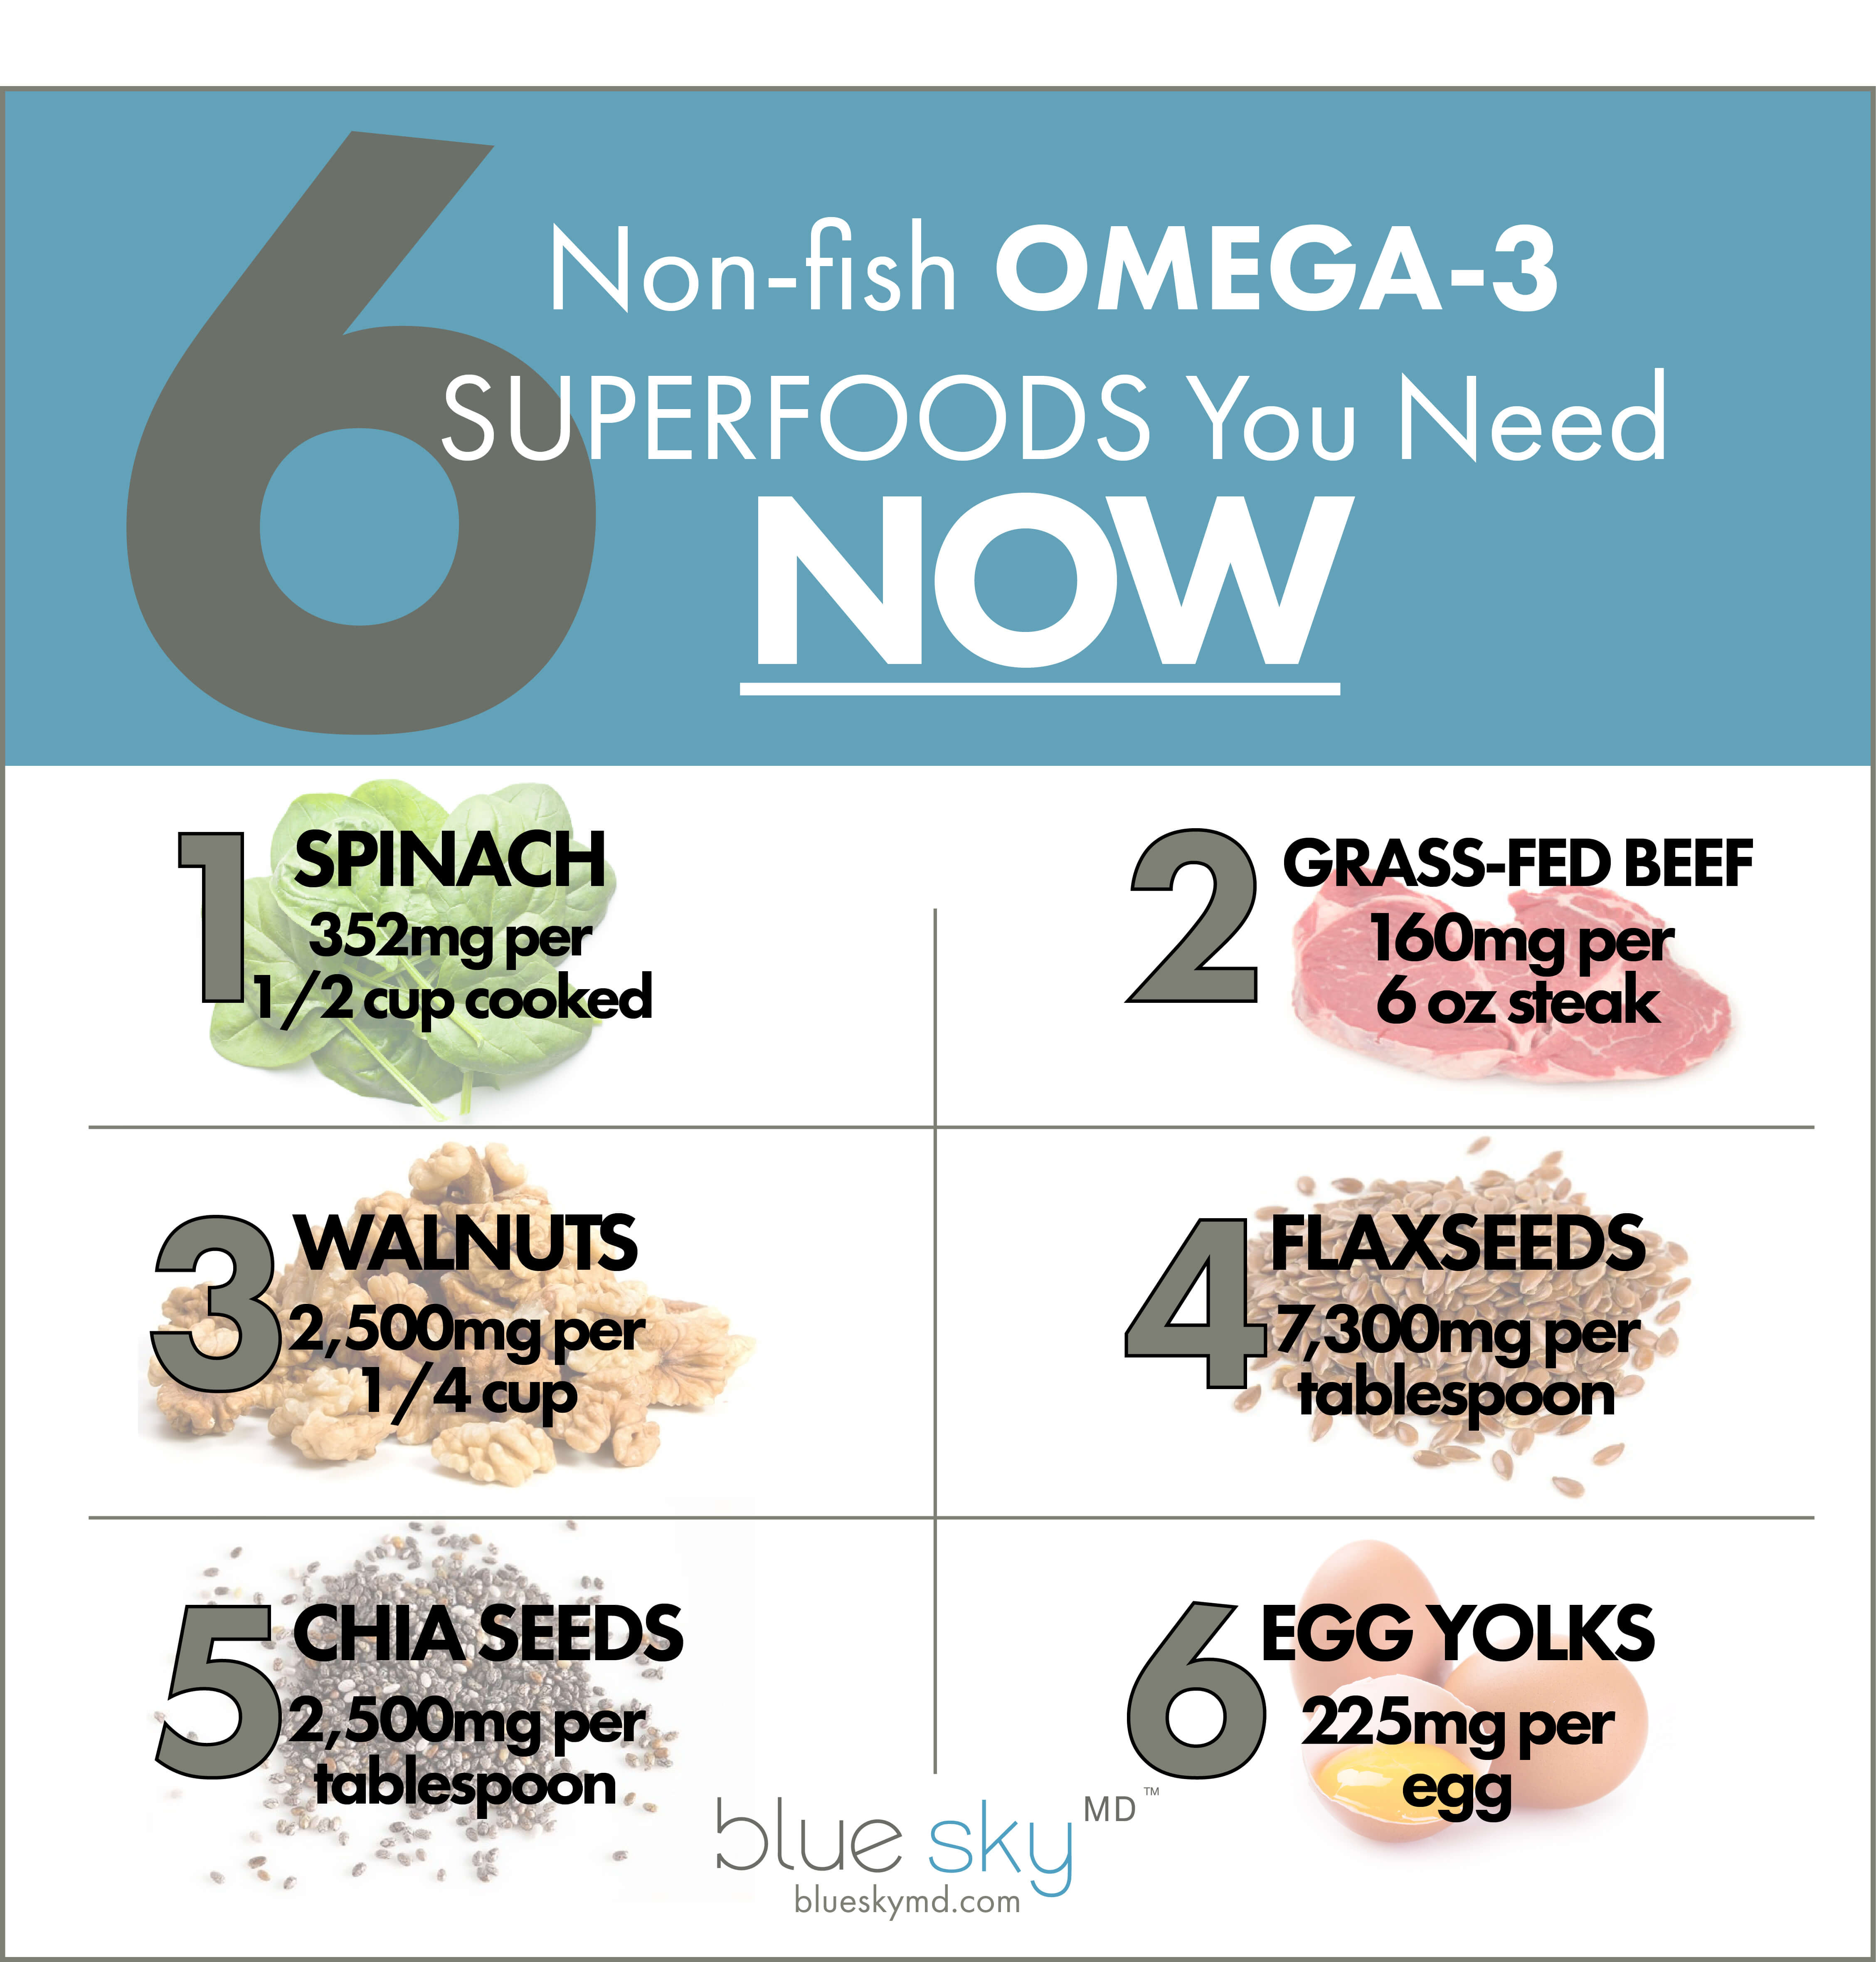 5 Non-fish Omega-3 Superfoods You Need NOW